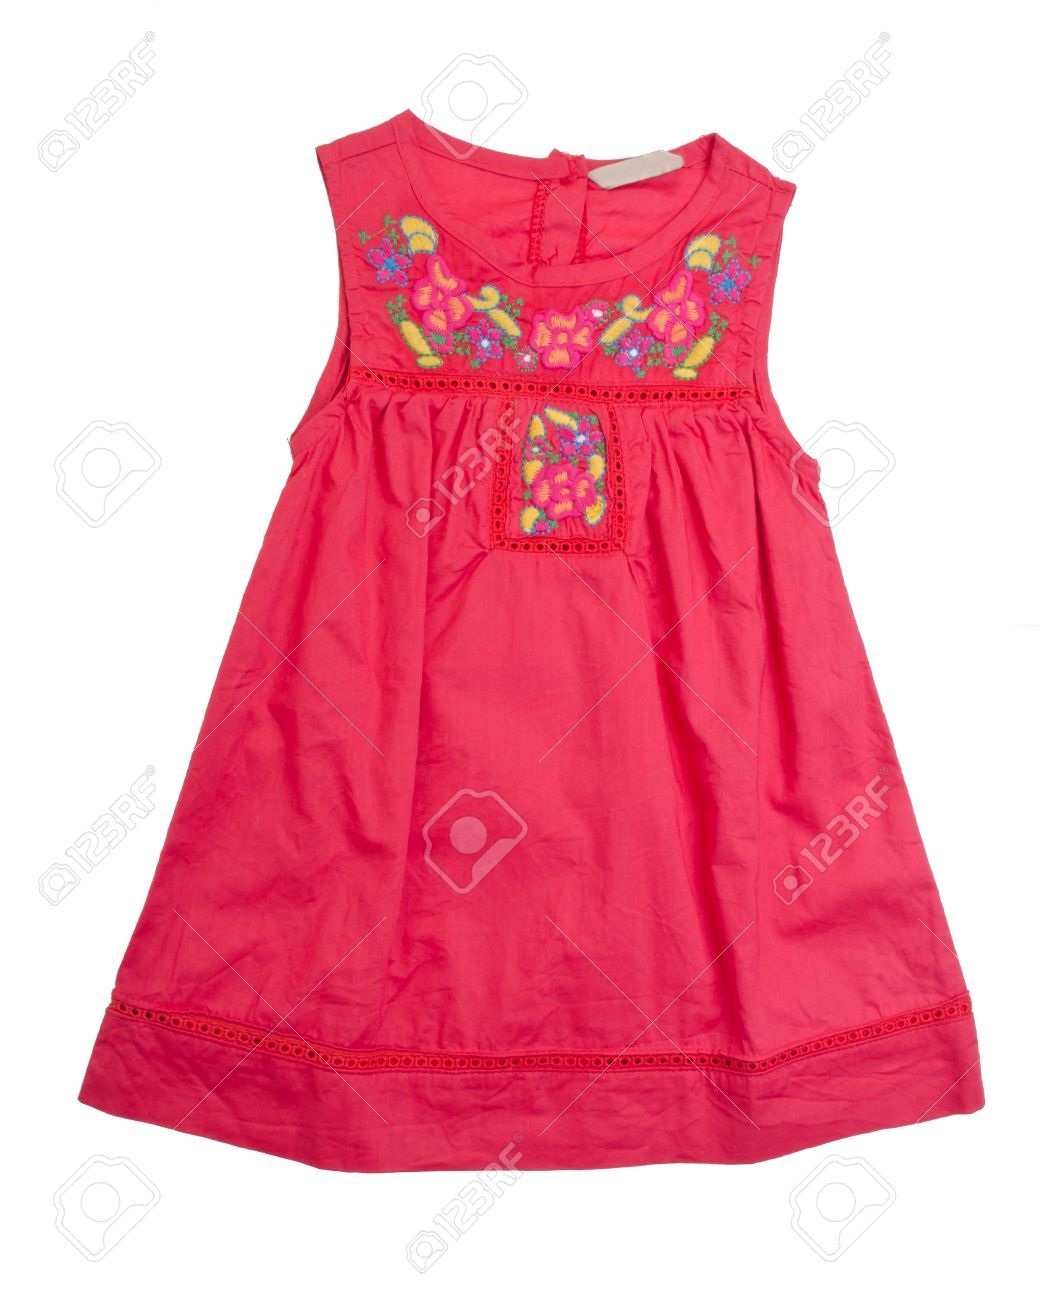 kids blouse and skirt on background Stock Photo - 18289754